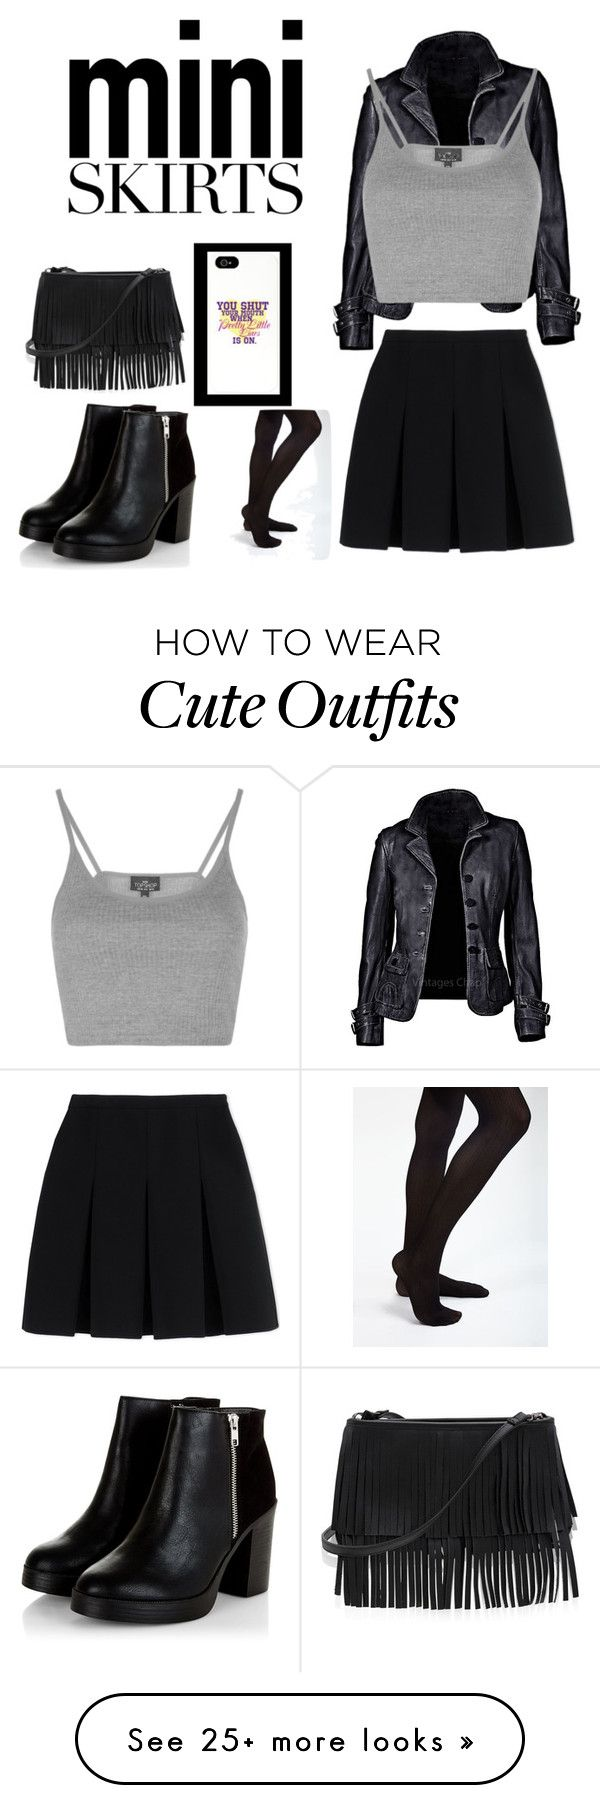 """""""Mini Skirt outfit"""" by prettylittletimelord on Polyvore featuring Topshop, Alexander Wang and White House Black Market"""